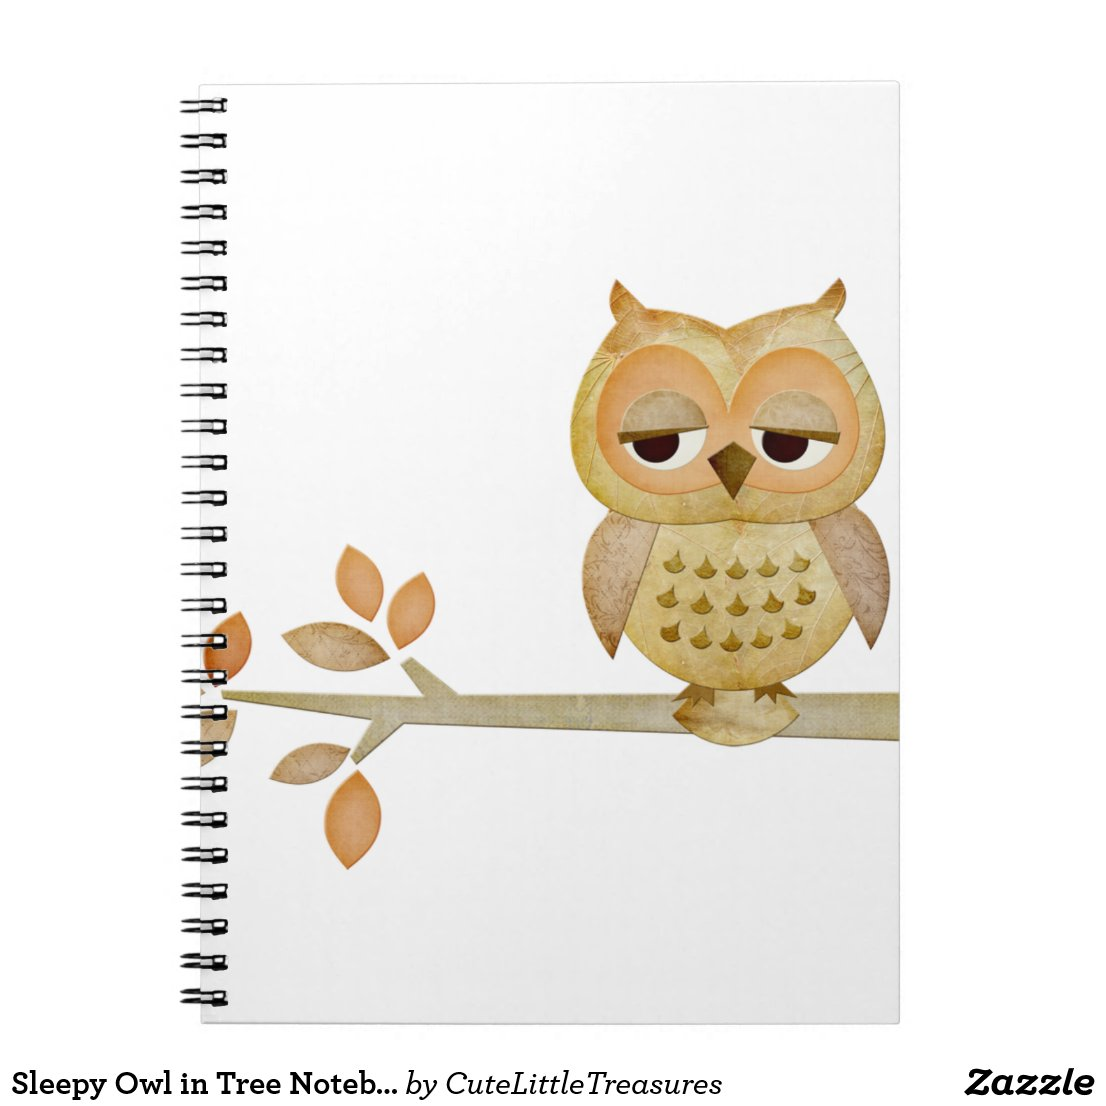 Sleepy Owl in Tree Notebook